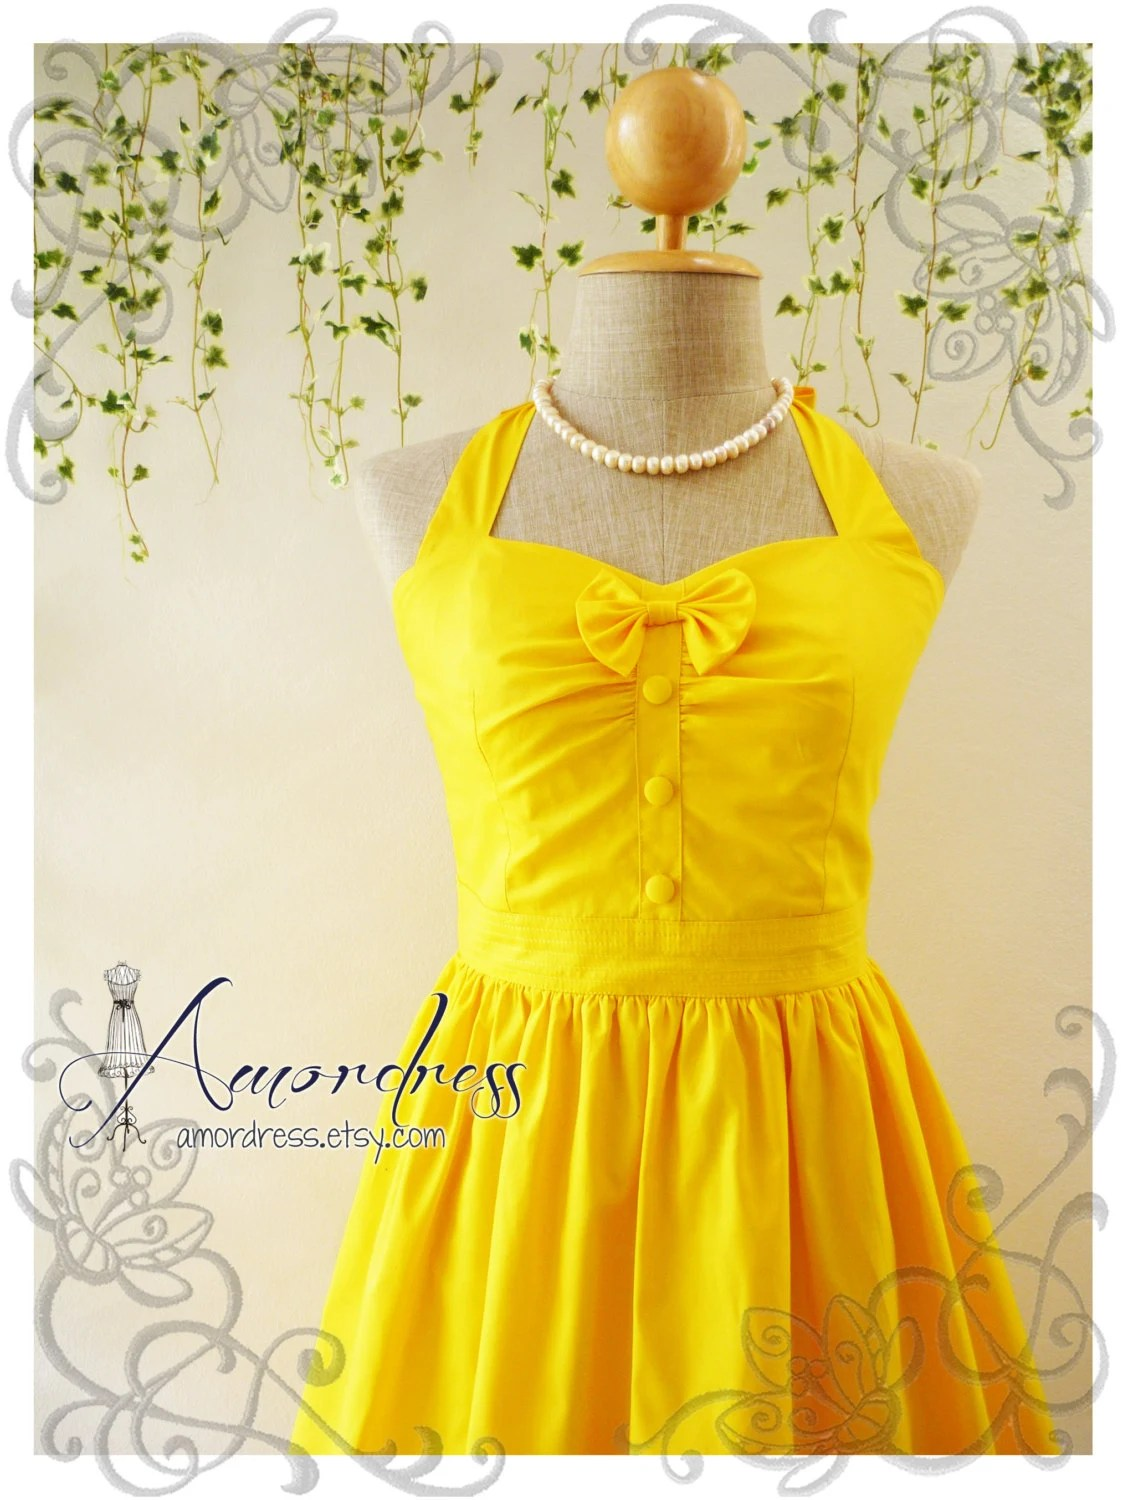 The Goddess Sunshine Yellow Dress Vintage Inspired Party Dress Halter Dress Bridesmaid Wedding Bridal Dress -Size XS, S, M, L, XL,CUSTOM- - Amordress